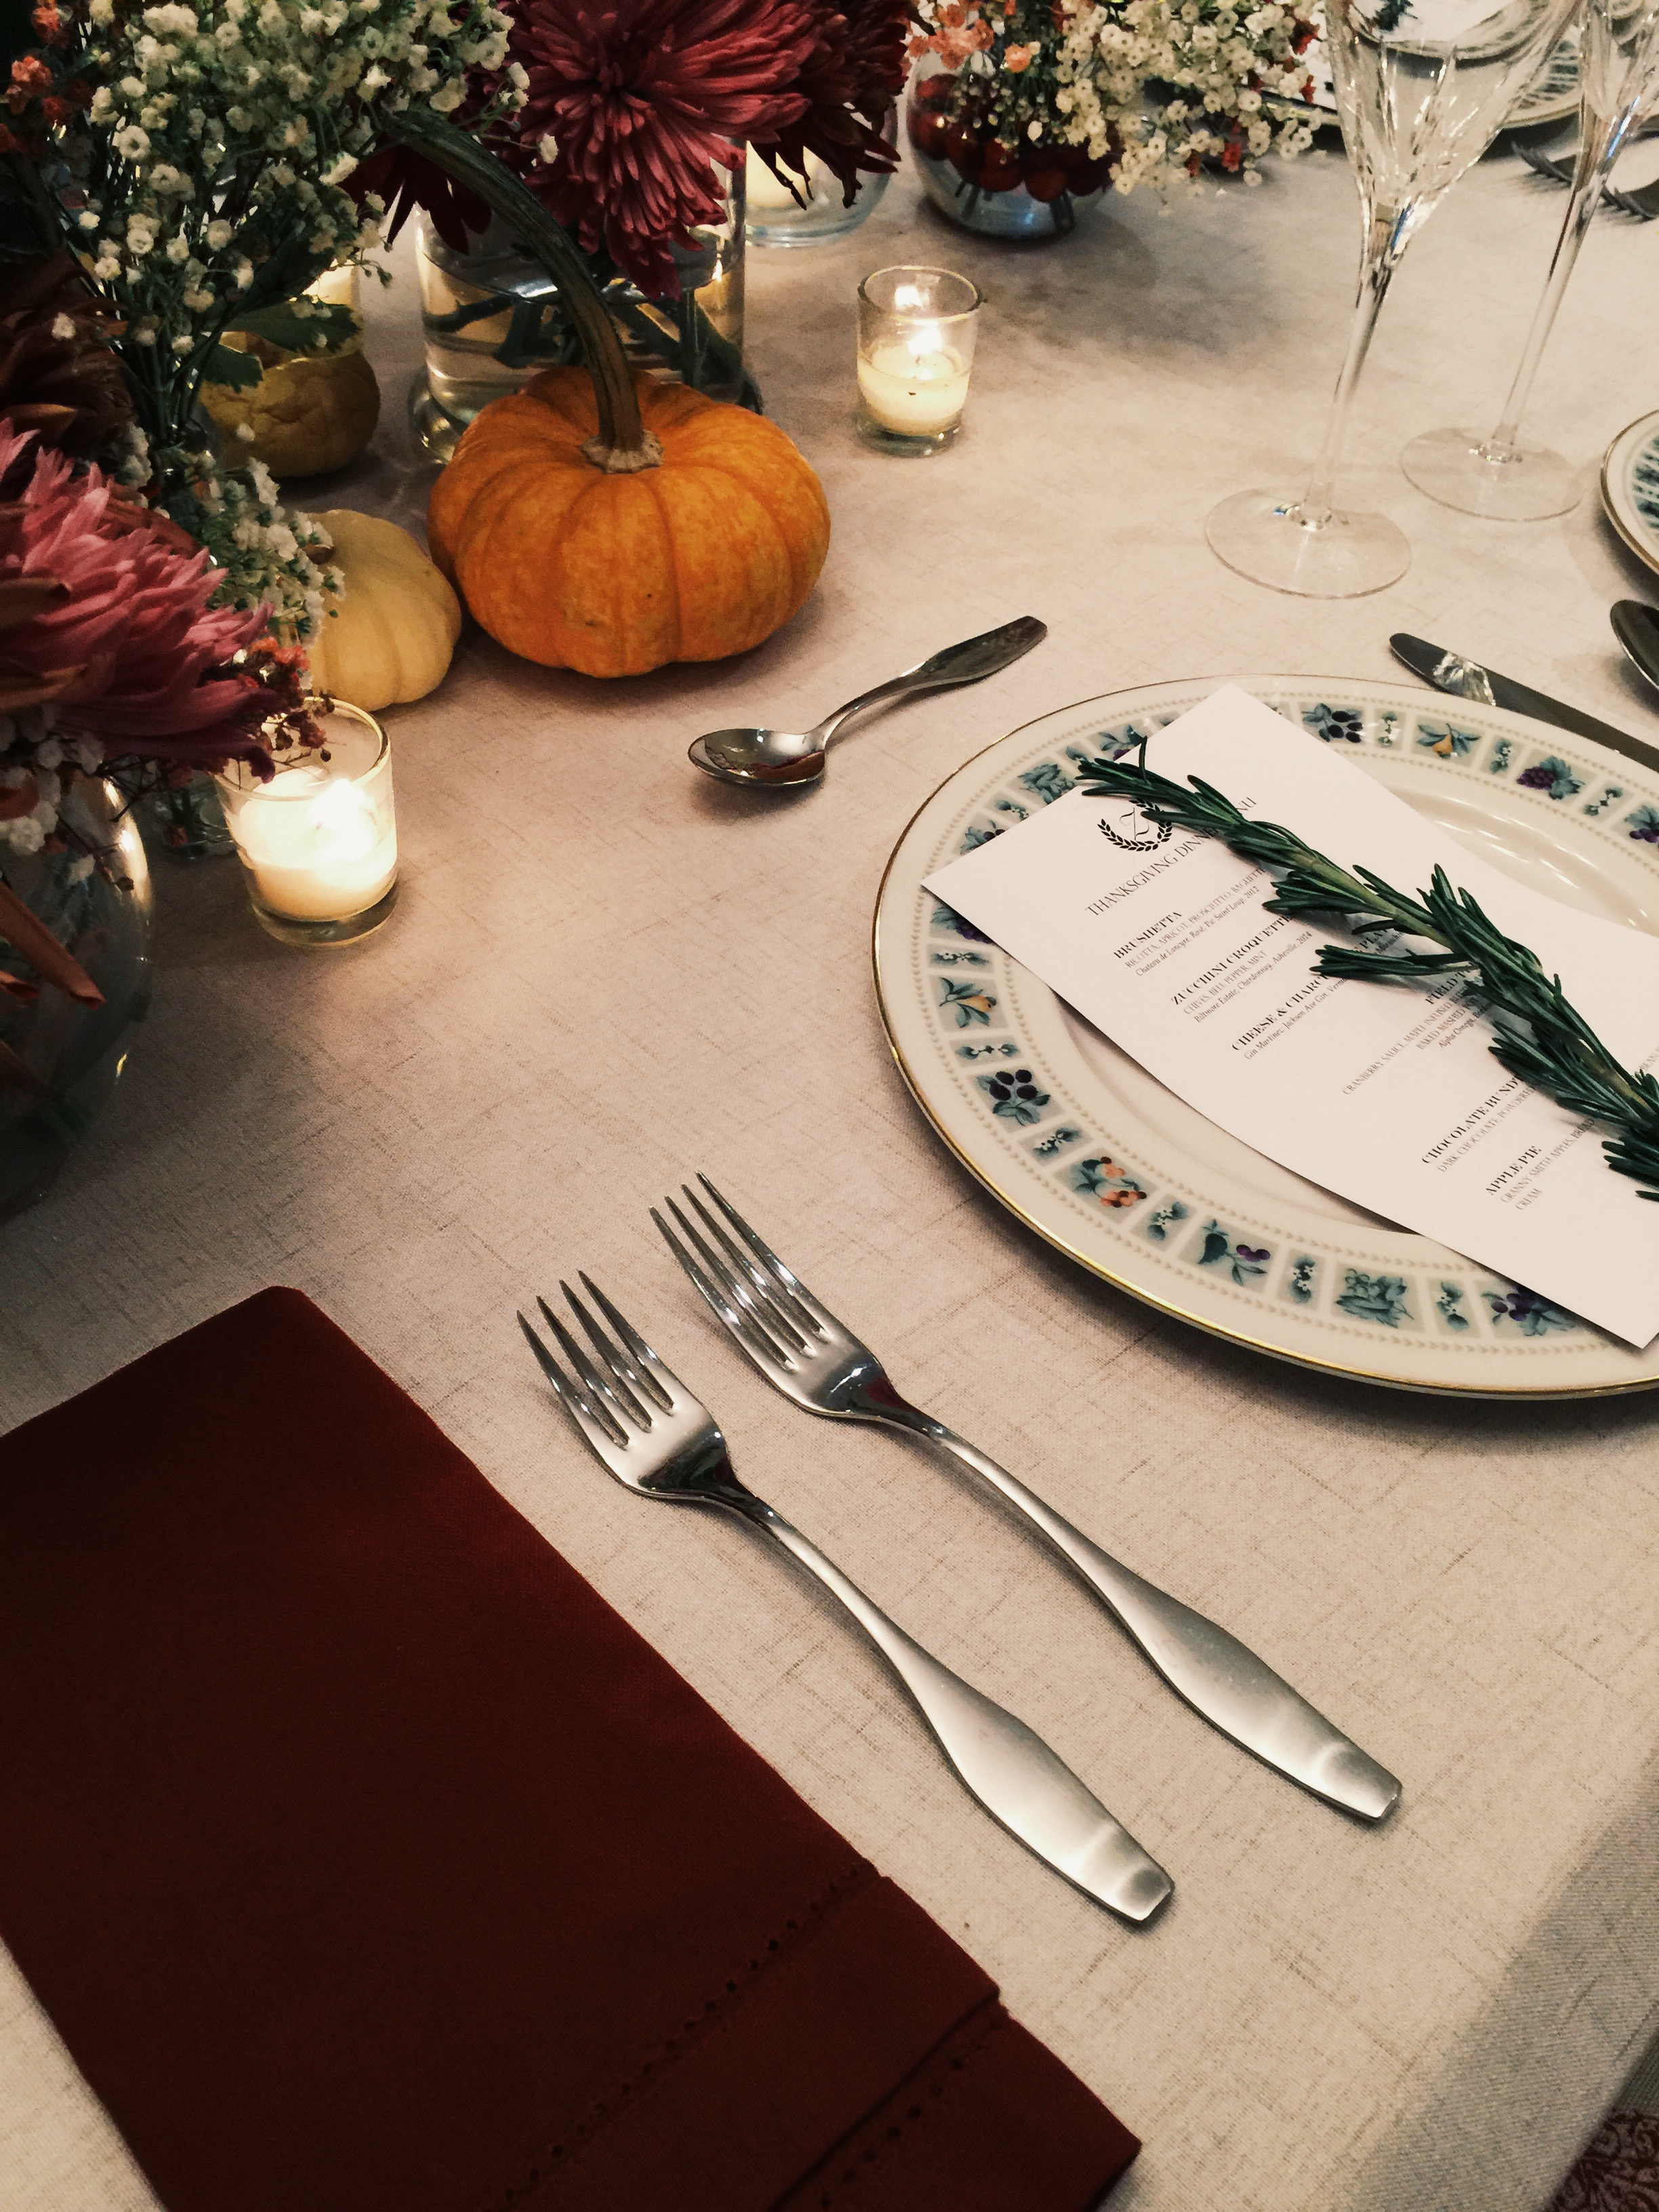 Cranberries help tie in the red in the plates and the heavy linen napkins keep things more #lowkey...even though everyone at the table will be pretty high strung.